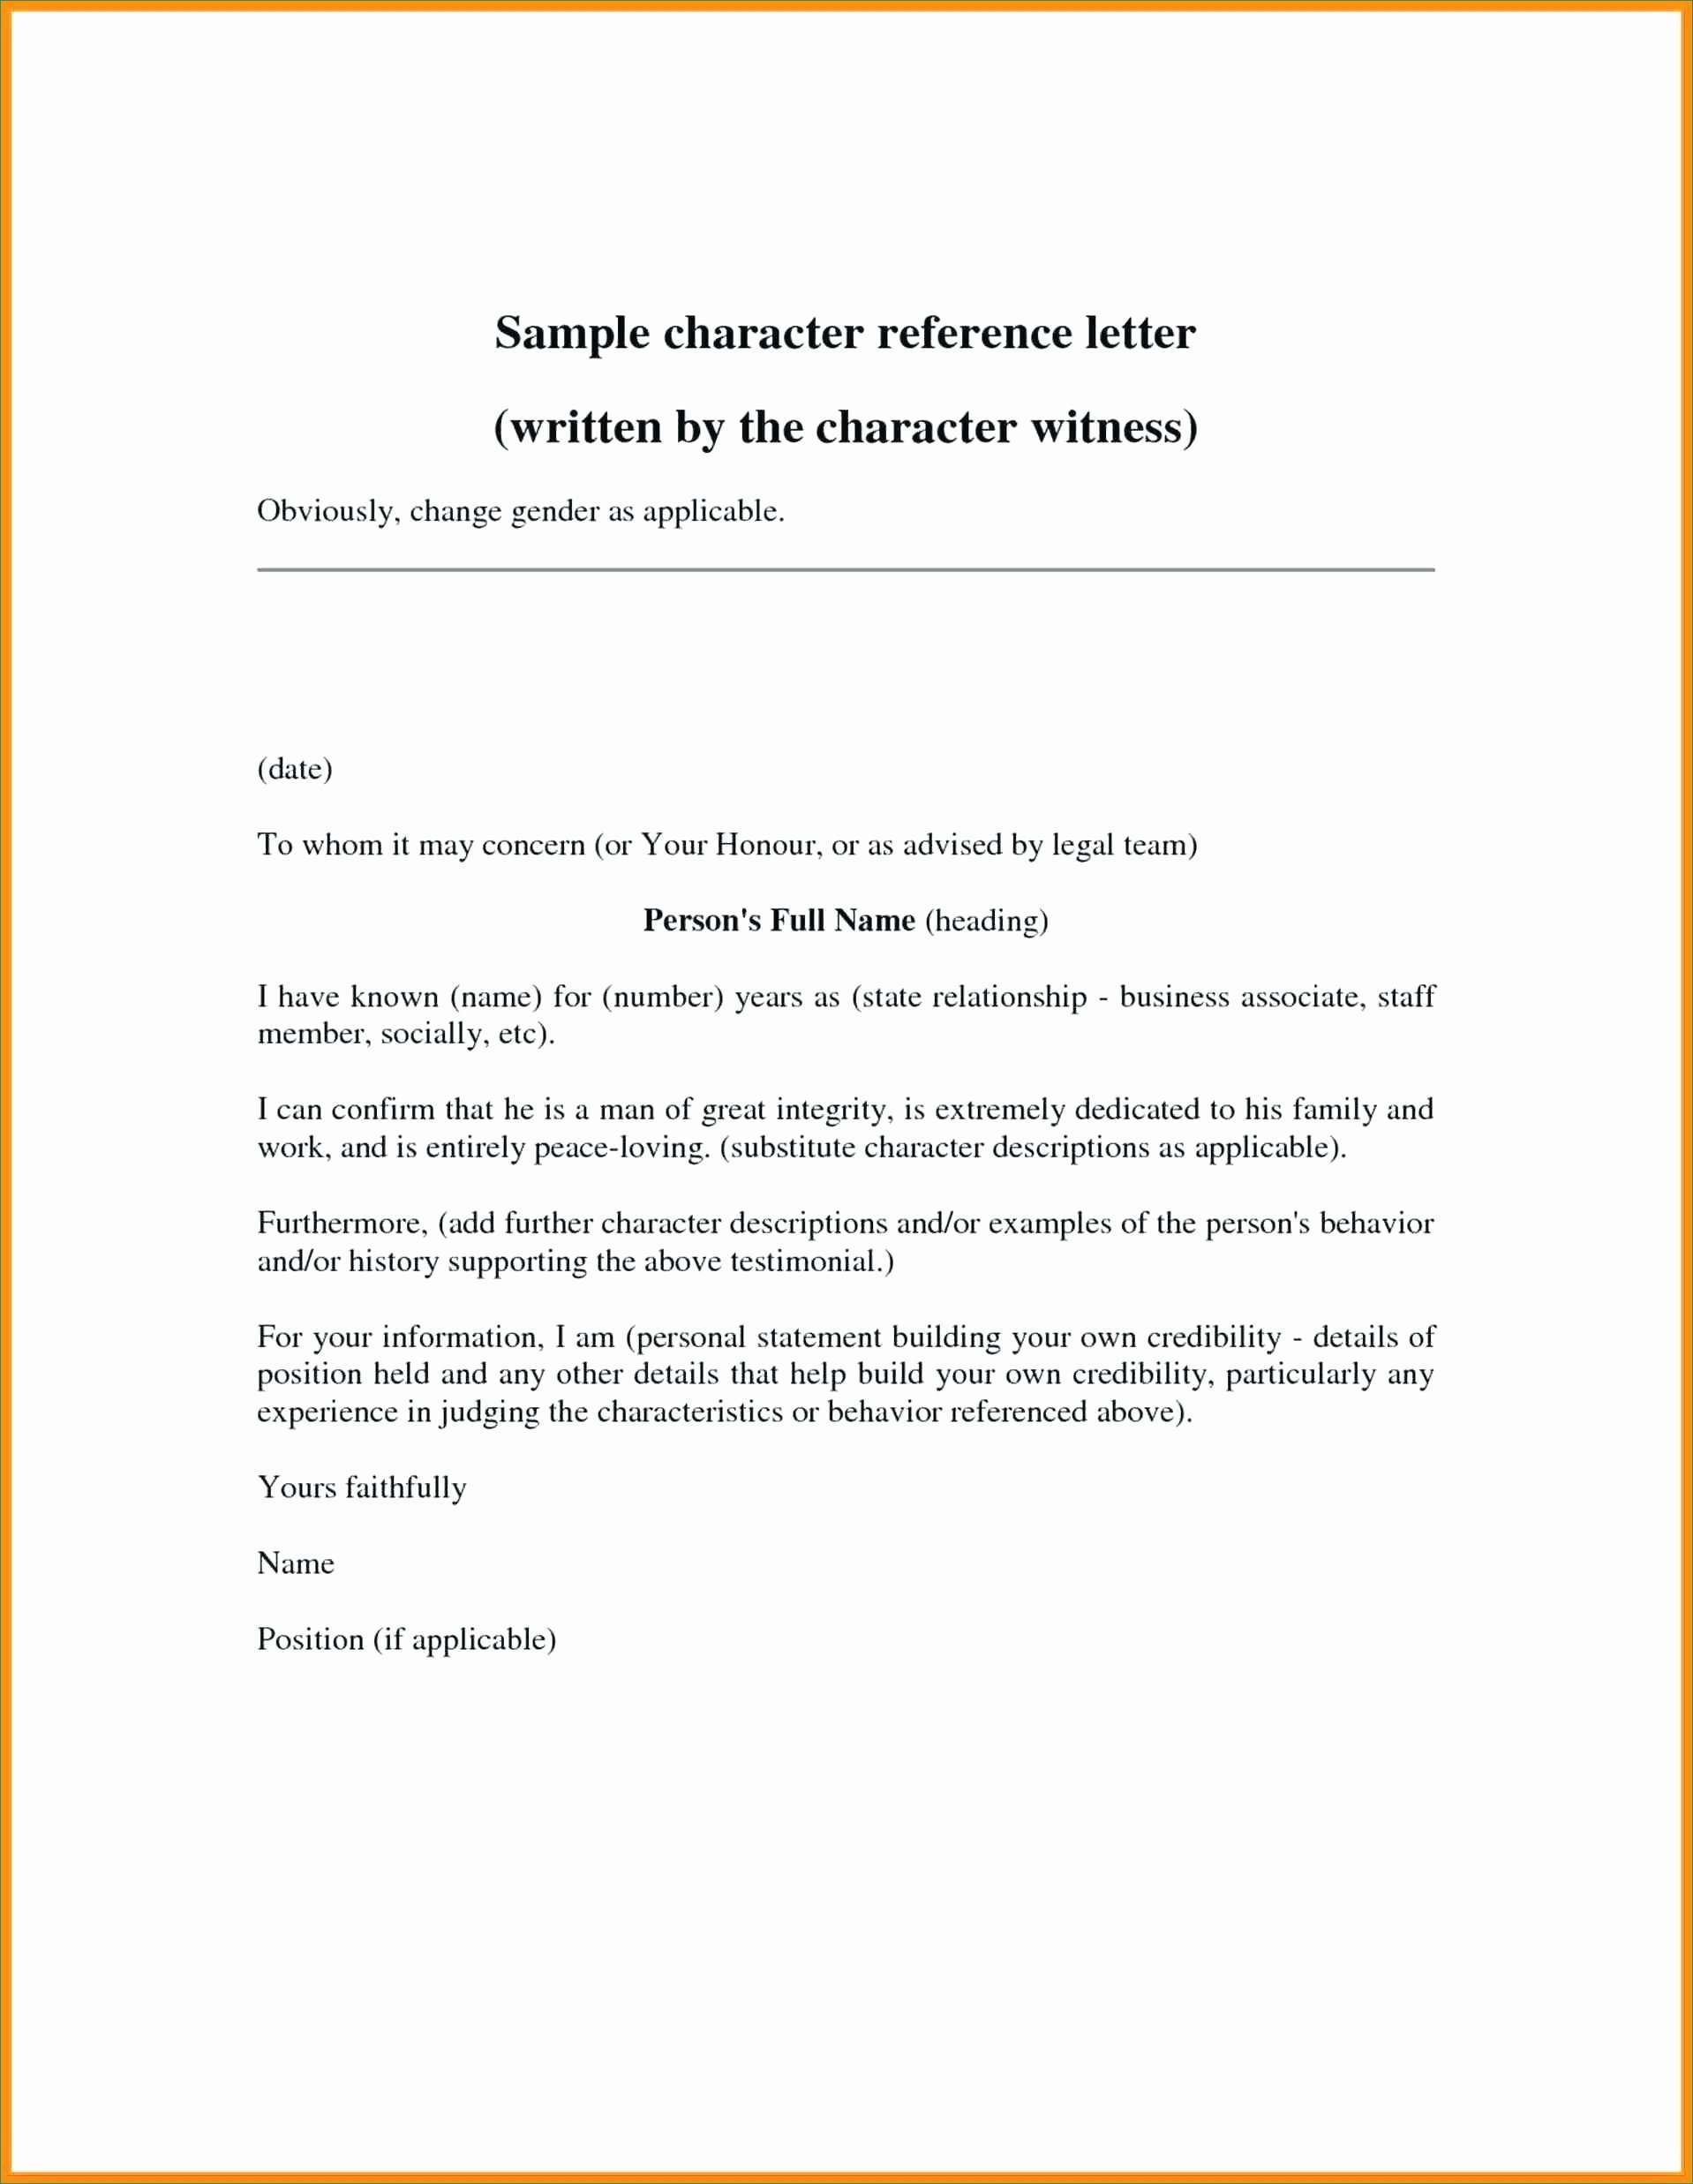 007 Wonderful Professional Reference Letter Template Word Highest Clarity Full